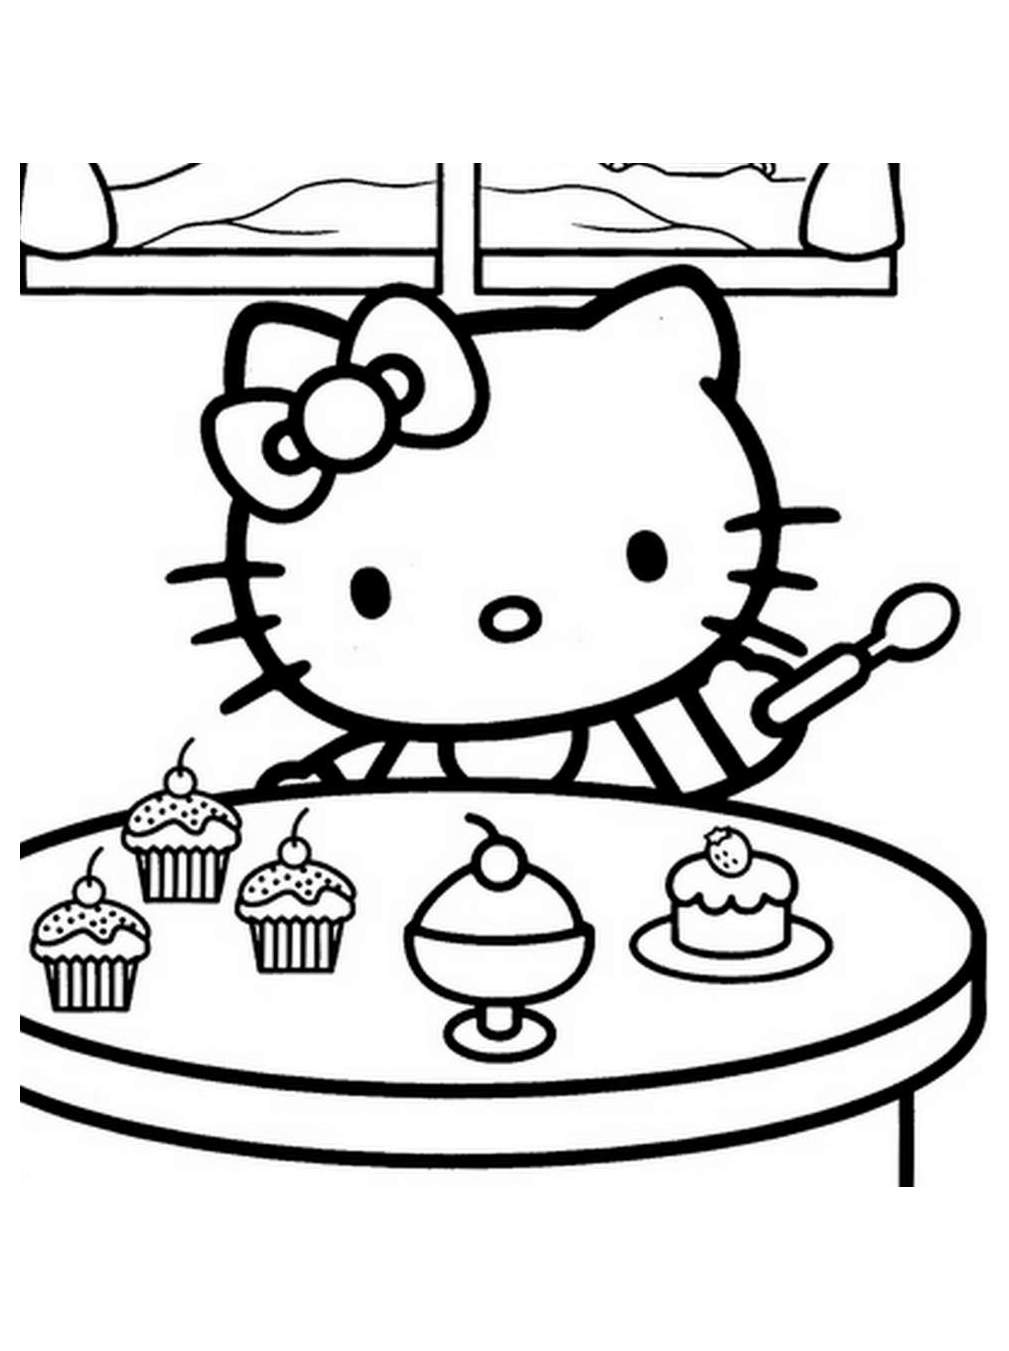 kitty hello coloring pages large hello kitty coloring pages download and print for free coloring pages hello kitty